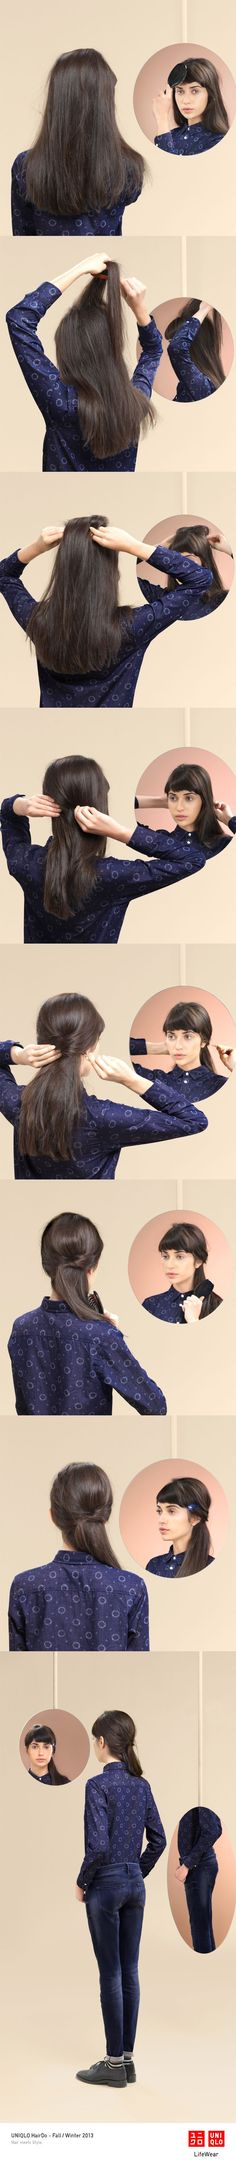 The Low Down - A quick and easy style, great with a pair of jeans for a day outside. #Twist #Hair #Hairstyle #DIY #Uniqlo